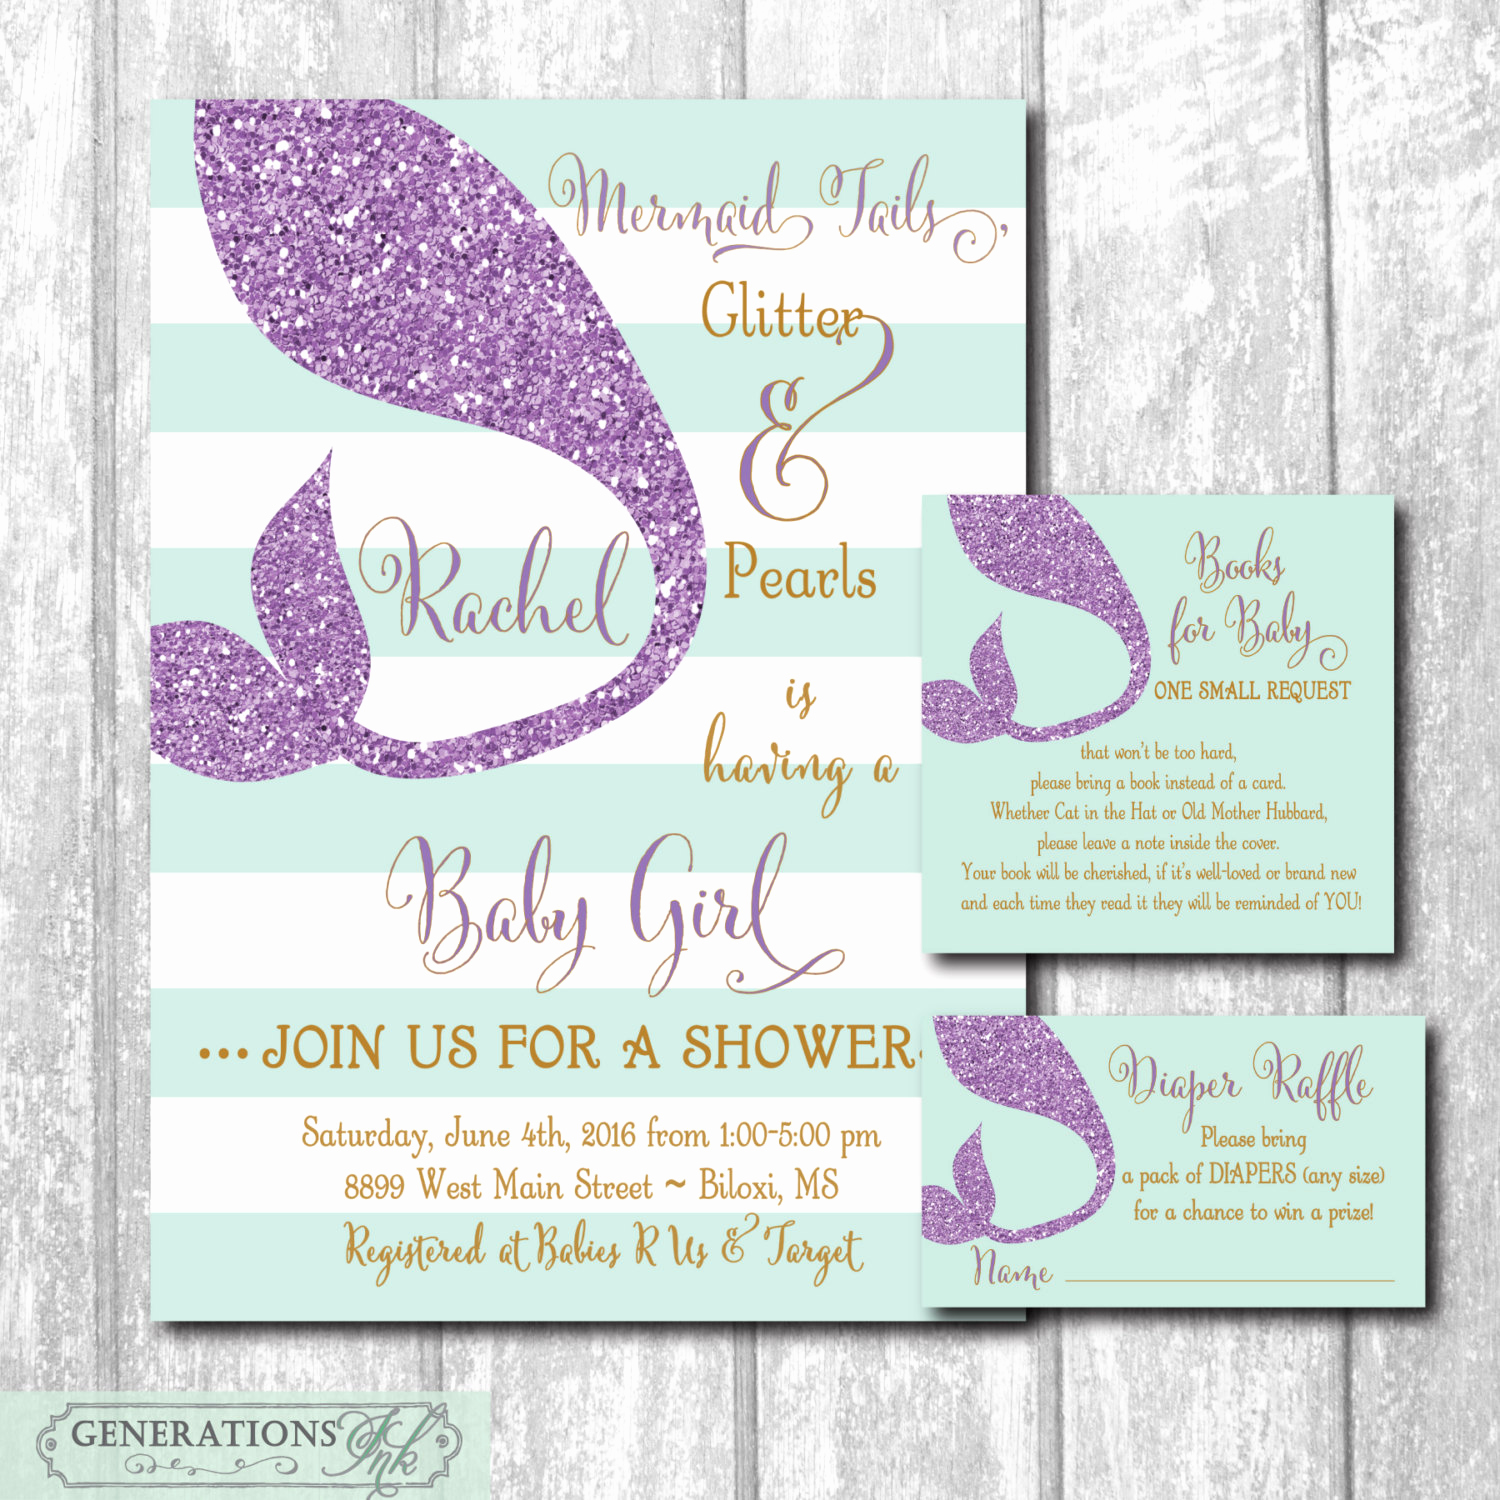 Diaper Raffle Wording On Invitation New Mermaid Baby Shower Invitation with Matching Diaper Raffle